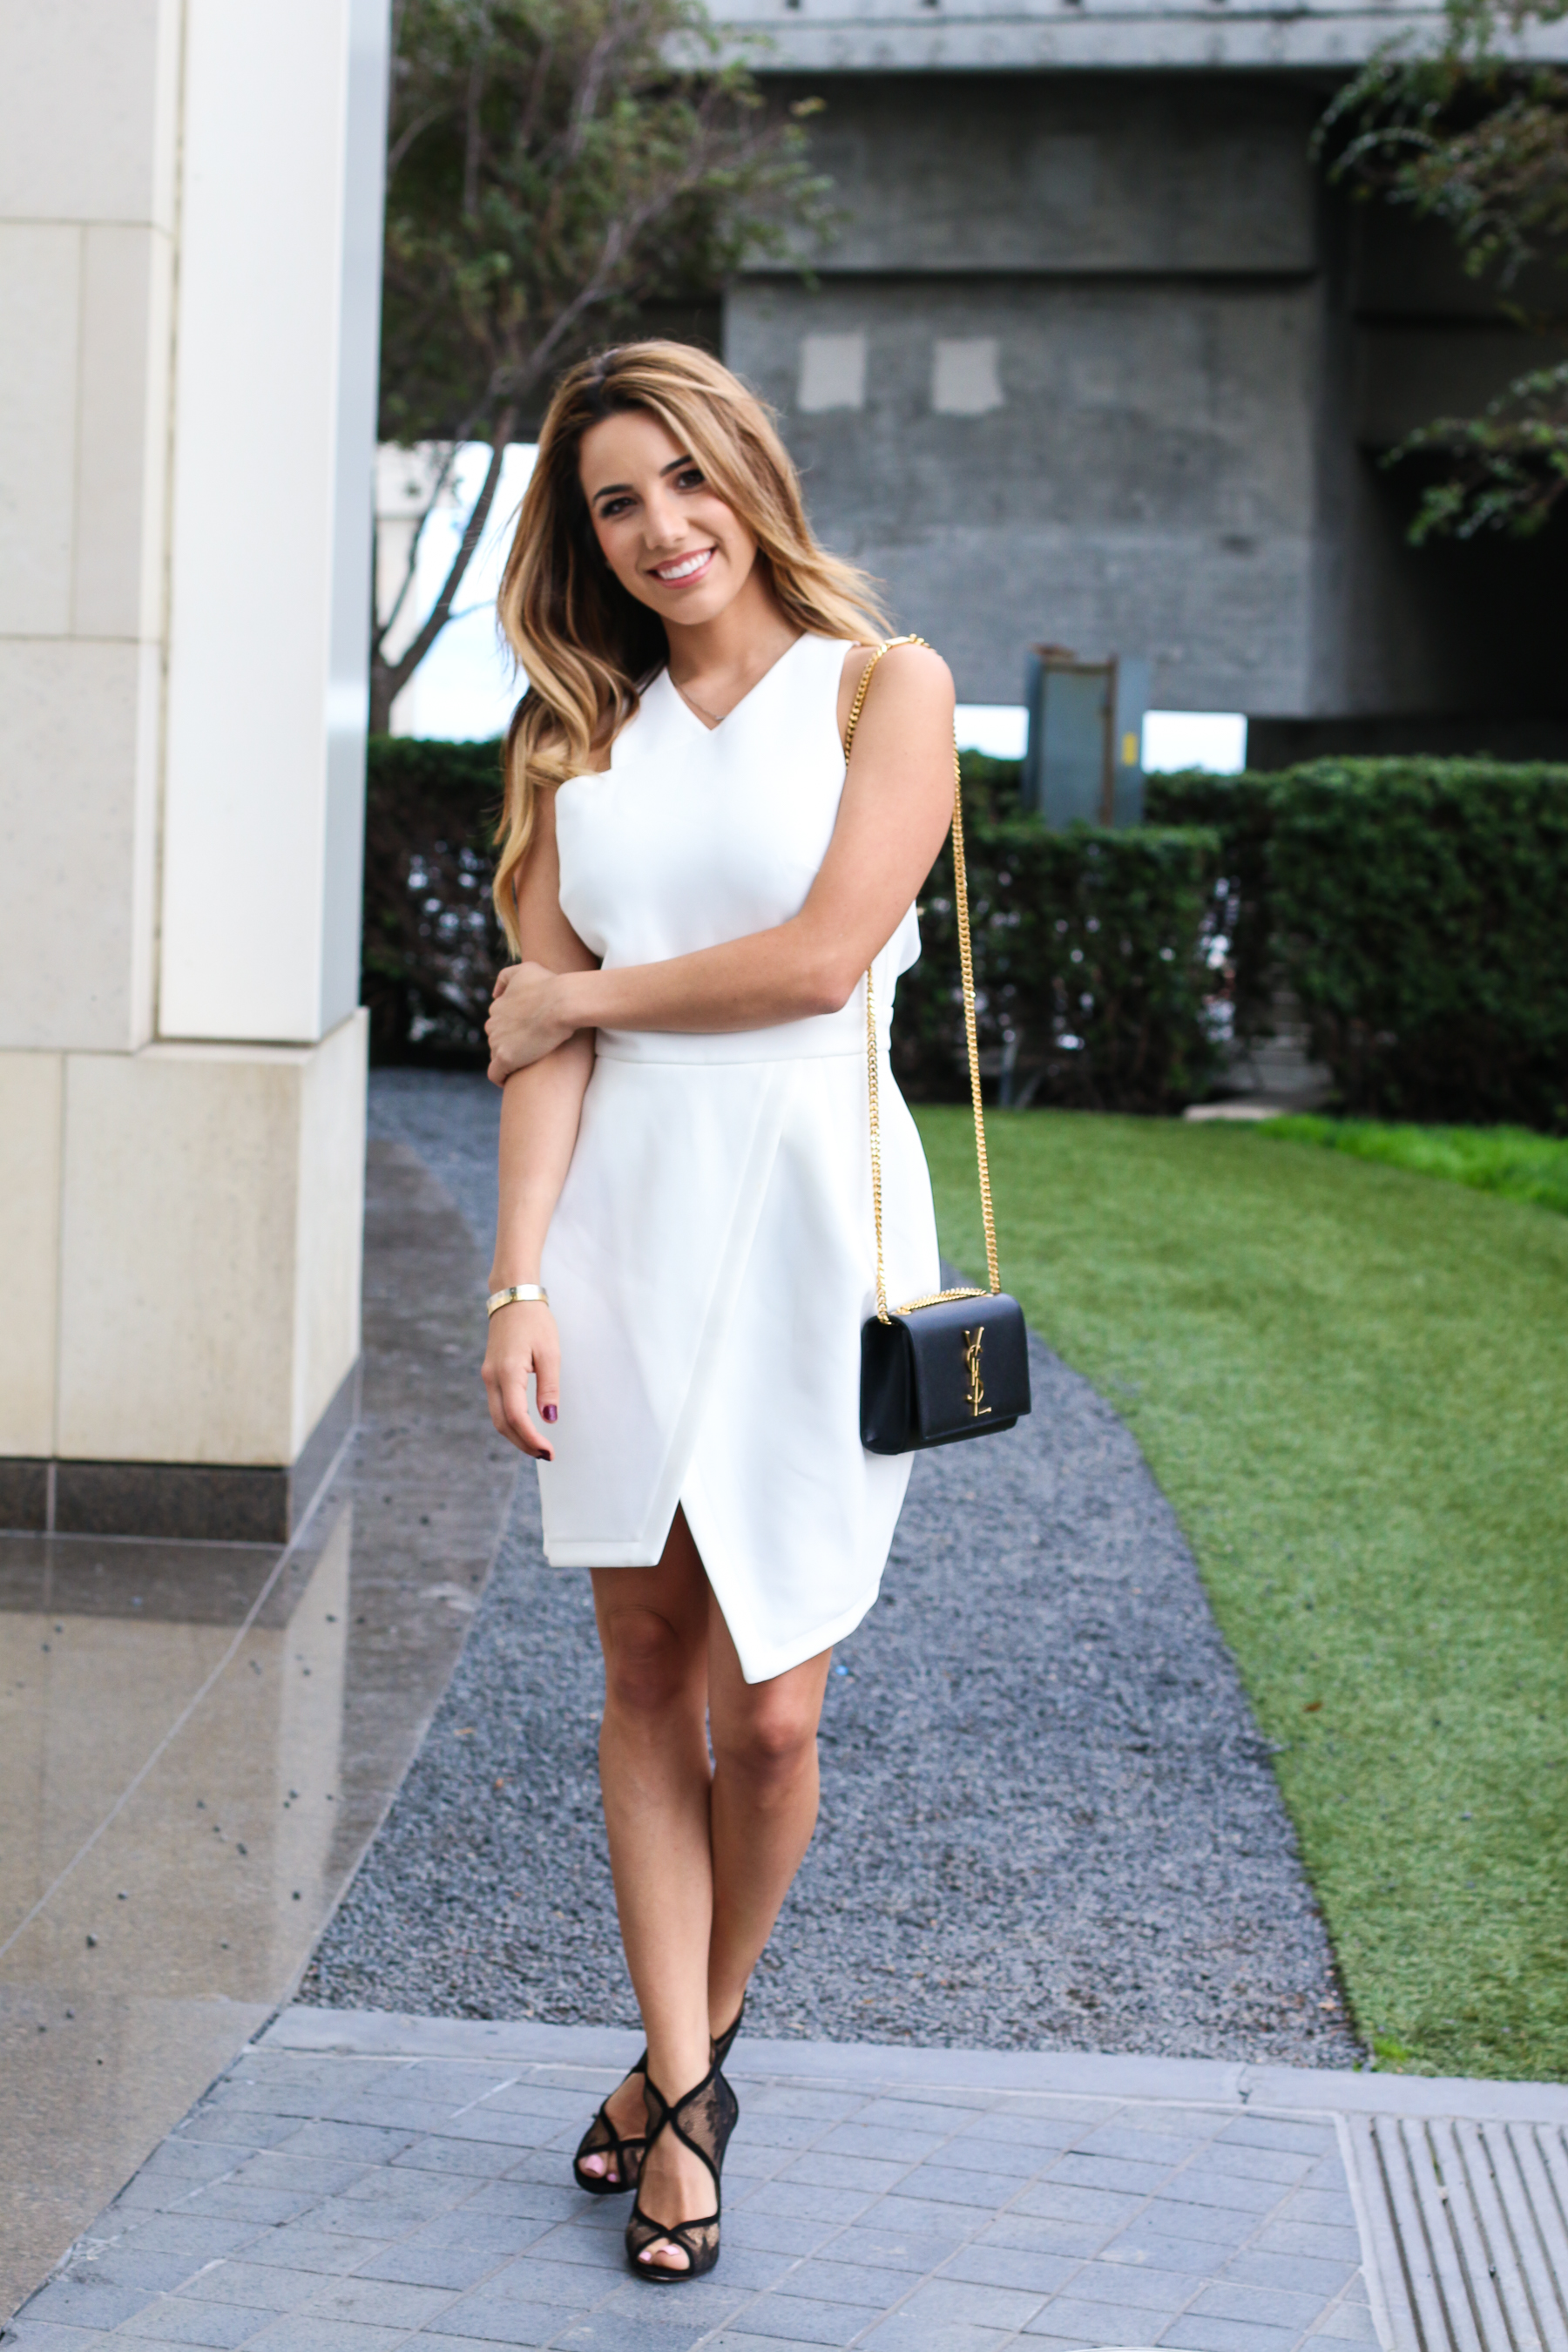 Ariana Lauren Fashion Born Blogger Streetstyle Photography by Ryan Chua-0944